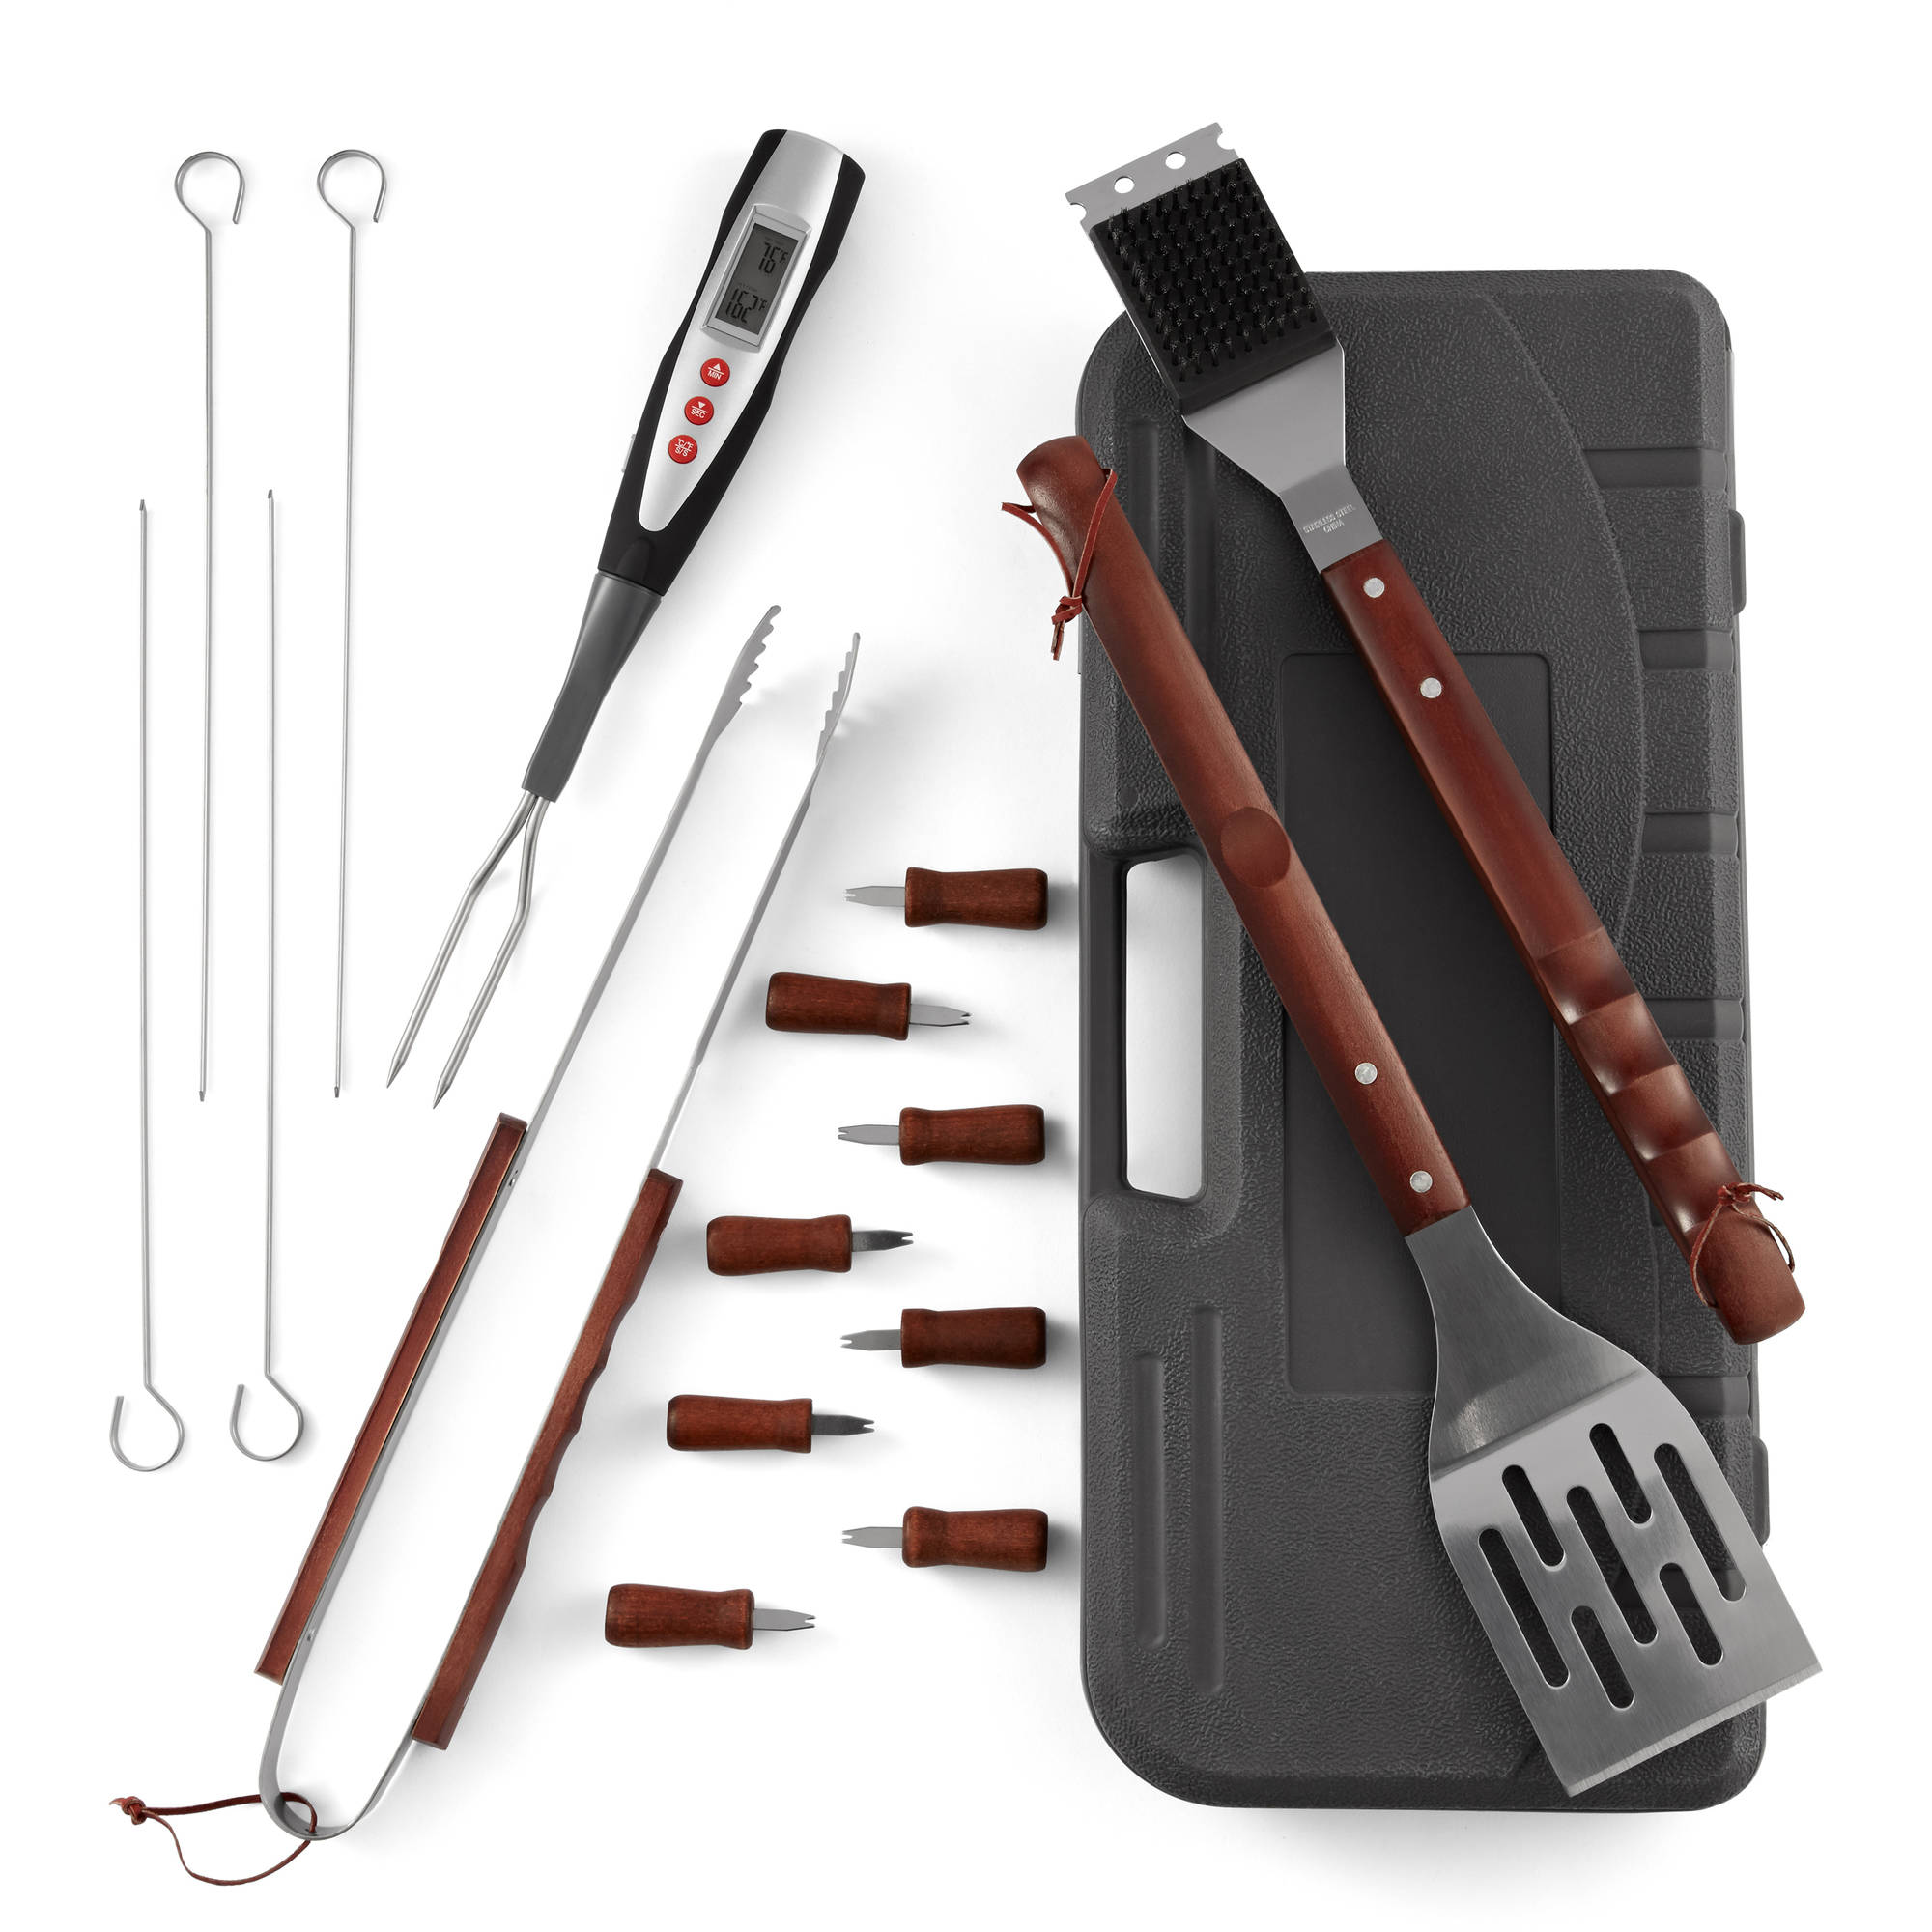 expert grill 17piece grilling tool set - Grilling Tools